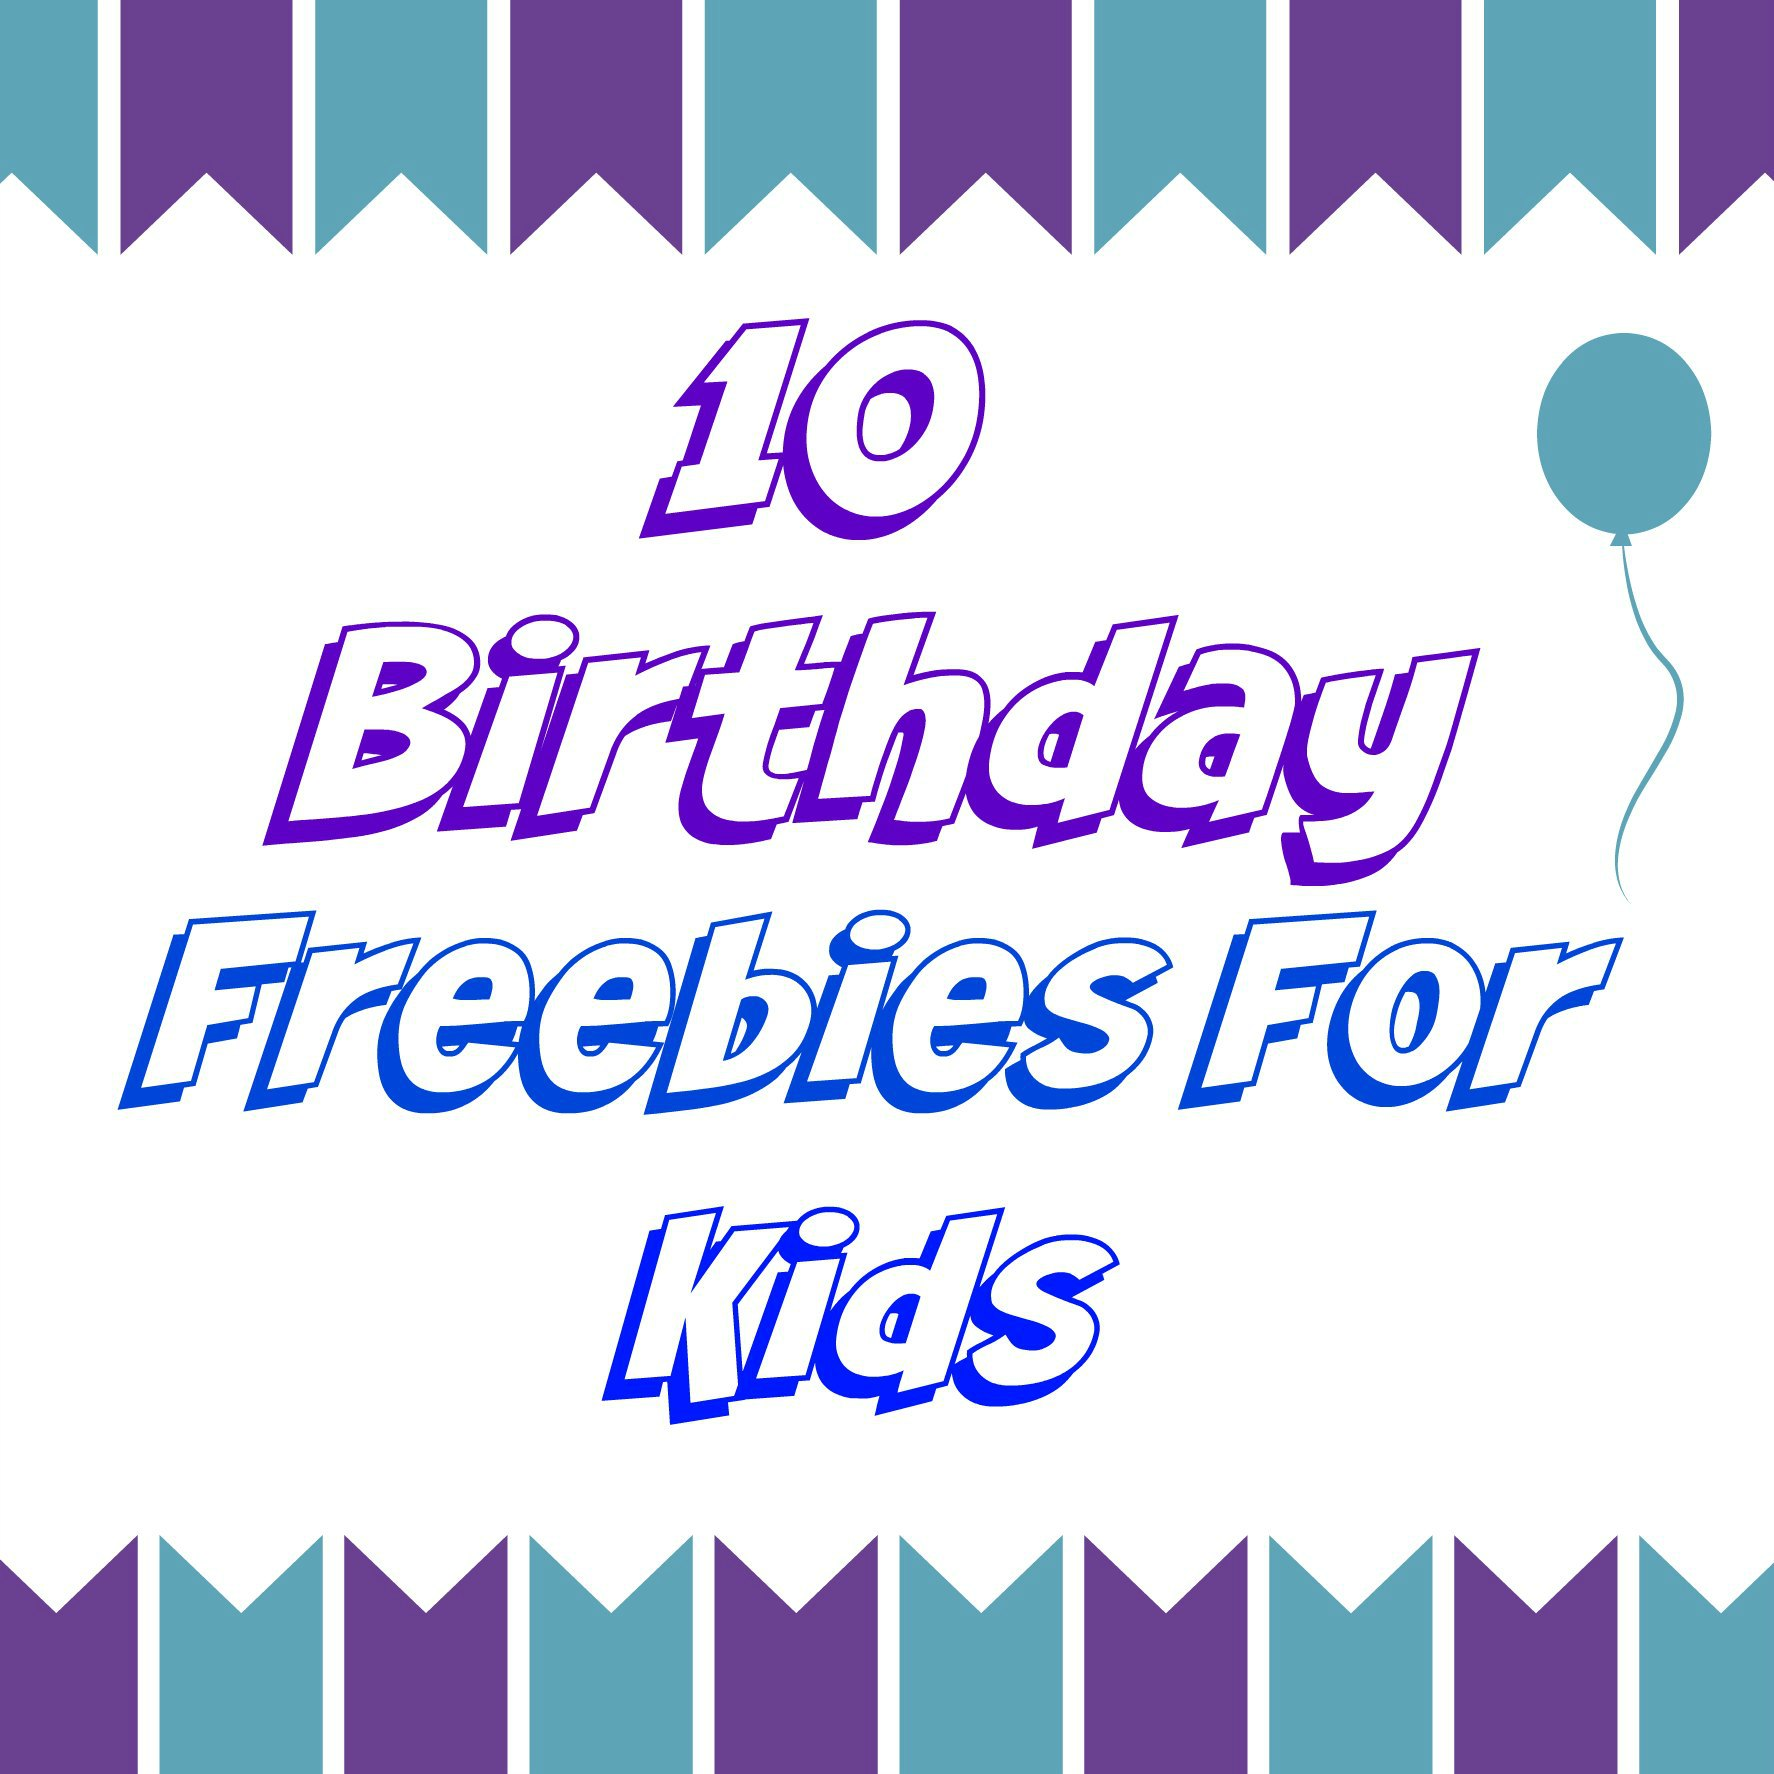 kids freebies a